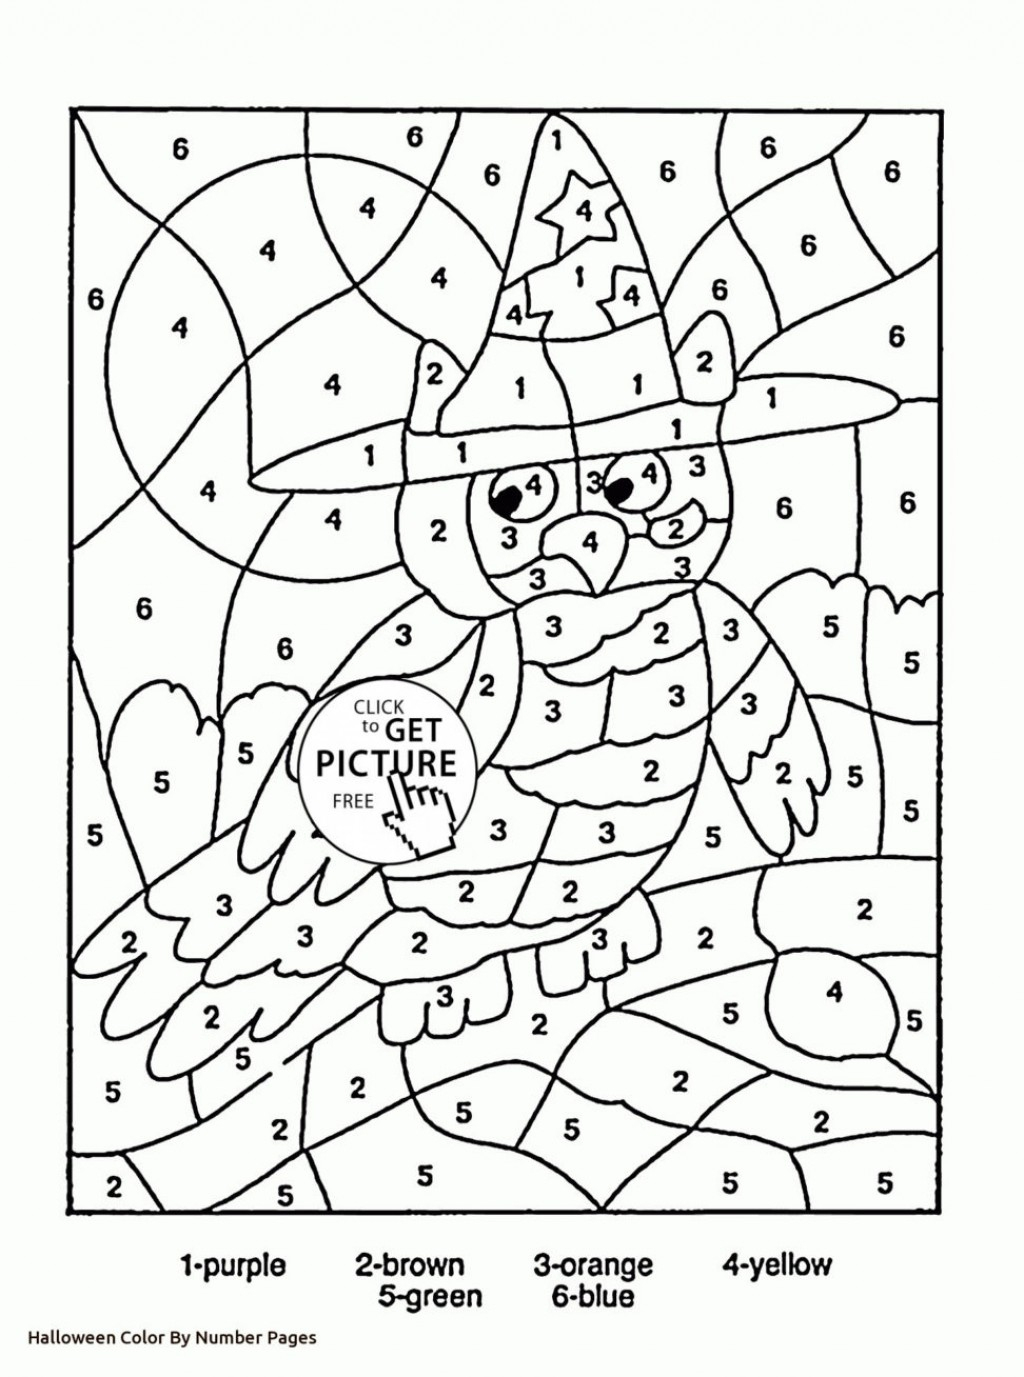 Free Printableplication Coloring Pictures For Adults Sheet